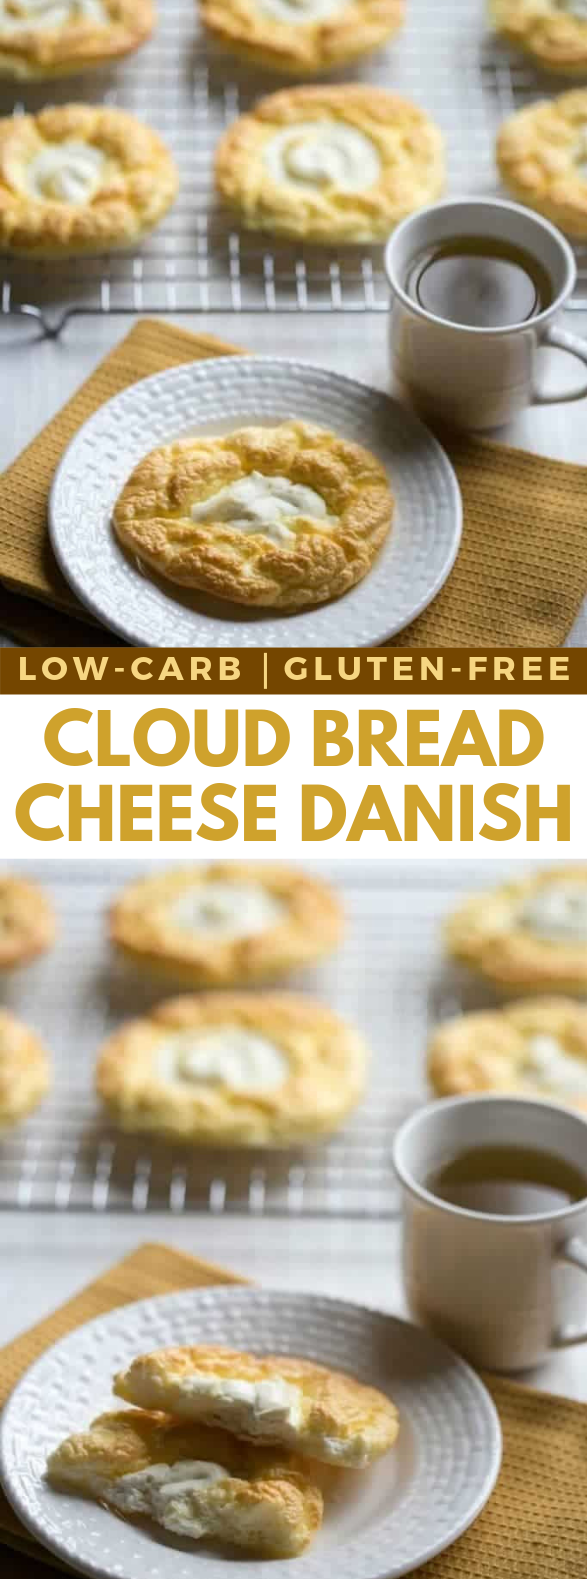 Cloud Bread Cheese Danish – Egg Fast #healthydiet #breakfast